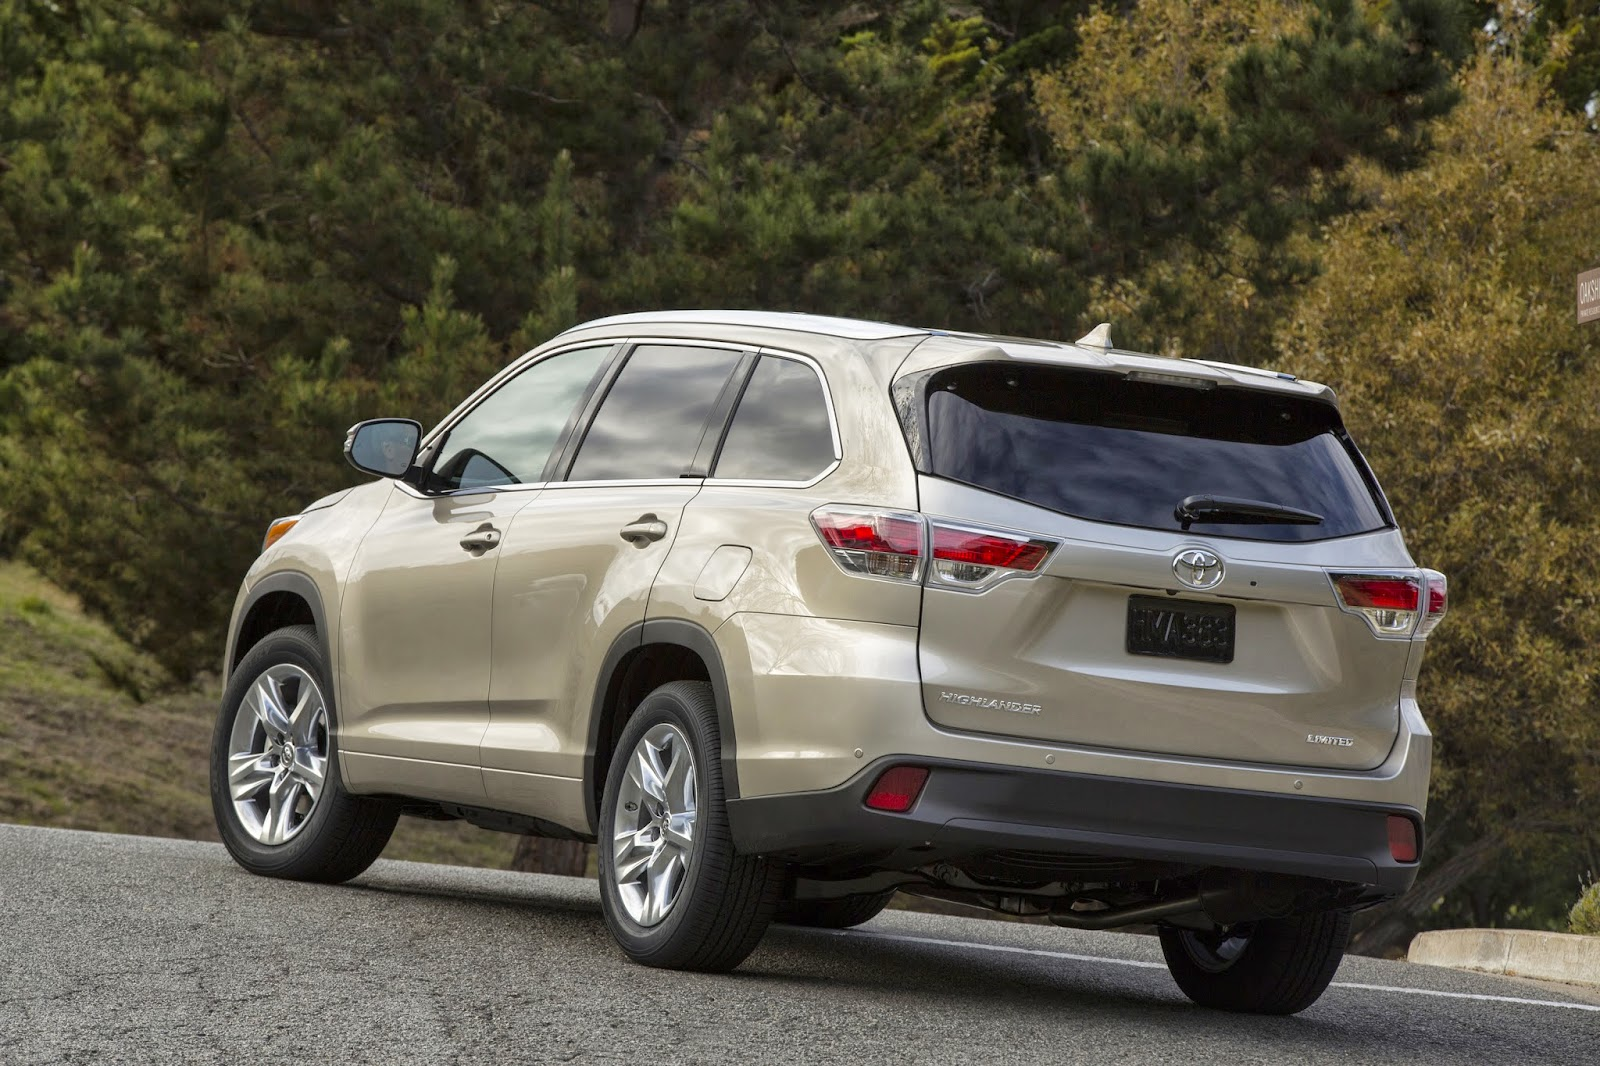 Rear 3/4 view of 2014 Toyota Highlander Hybrid